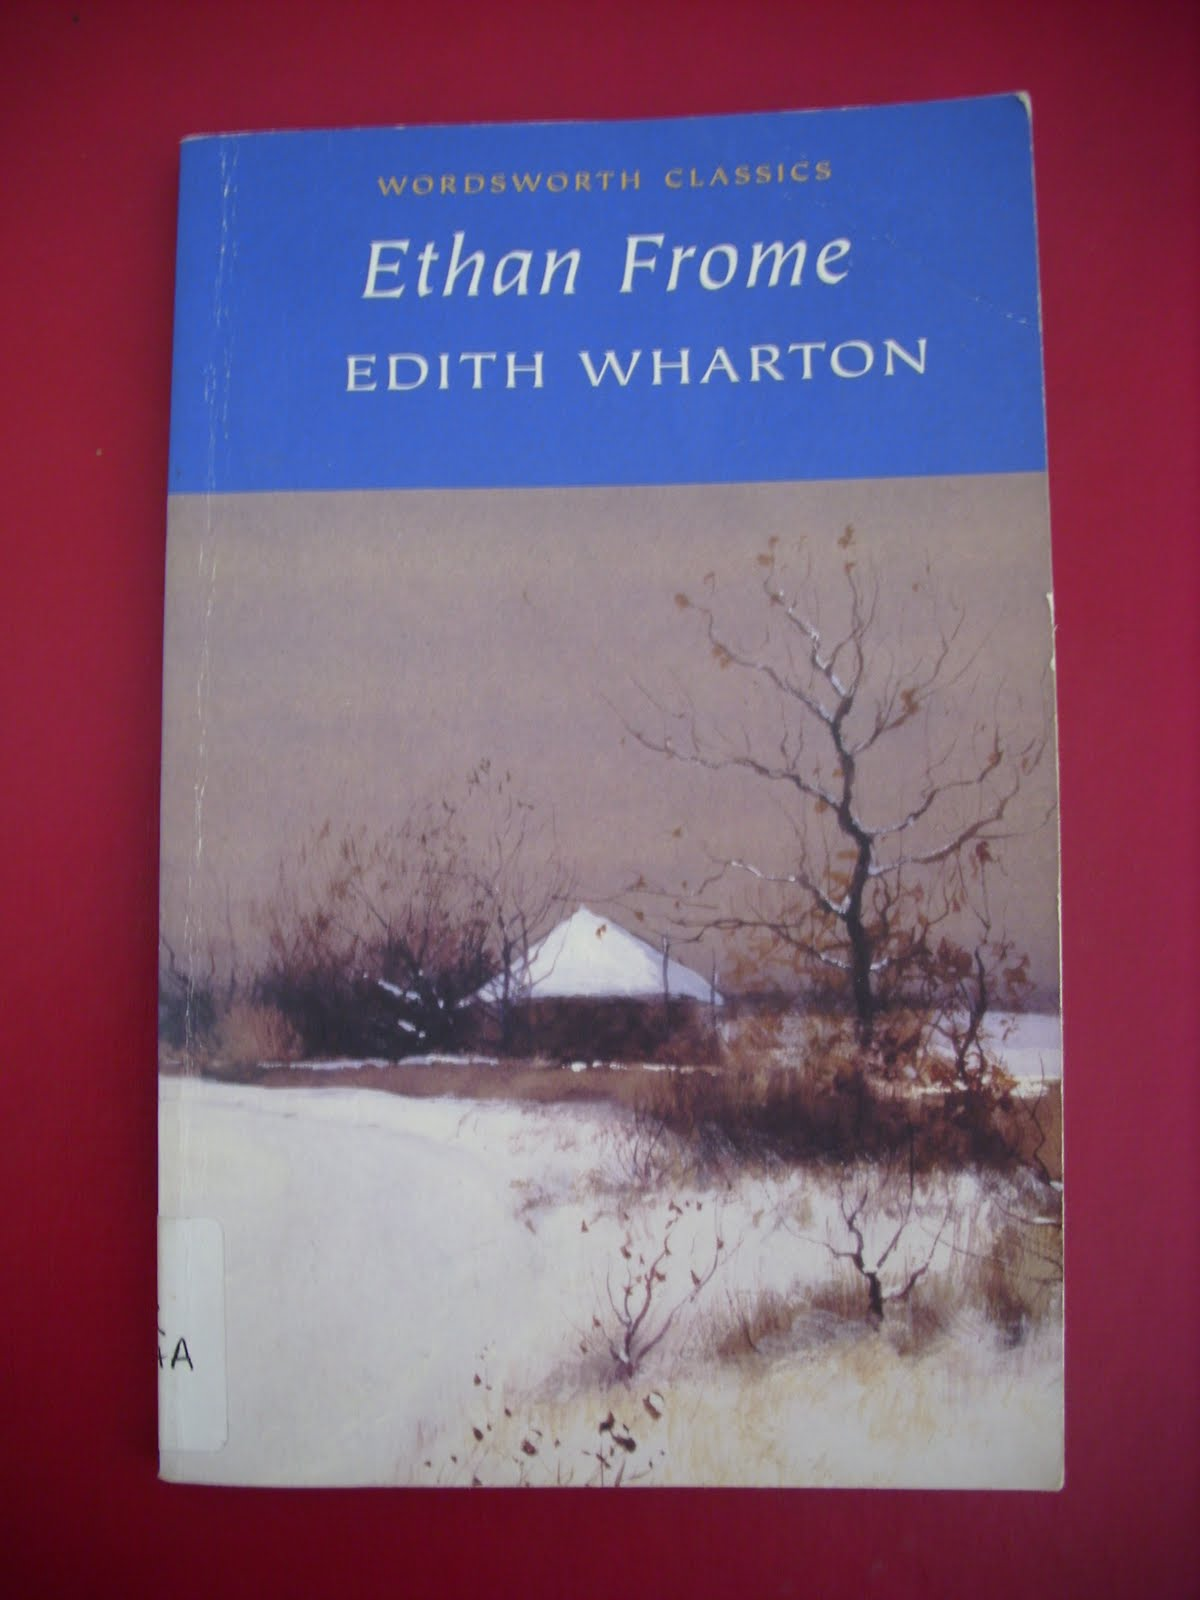 a literary analysis of the novel ethan frome by edith wharton Ethan frome: background and literary movement edith wharton's ethan frome is representative of the american realist if ever place was a character in a novel.